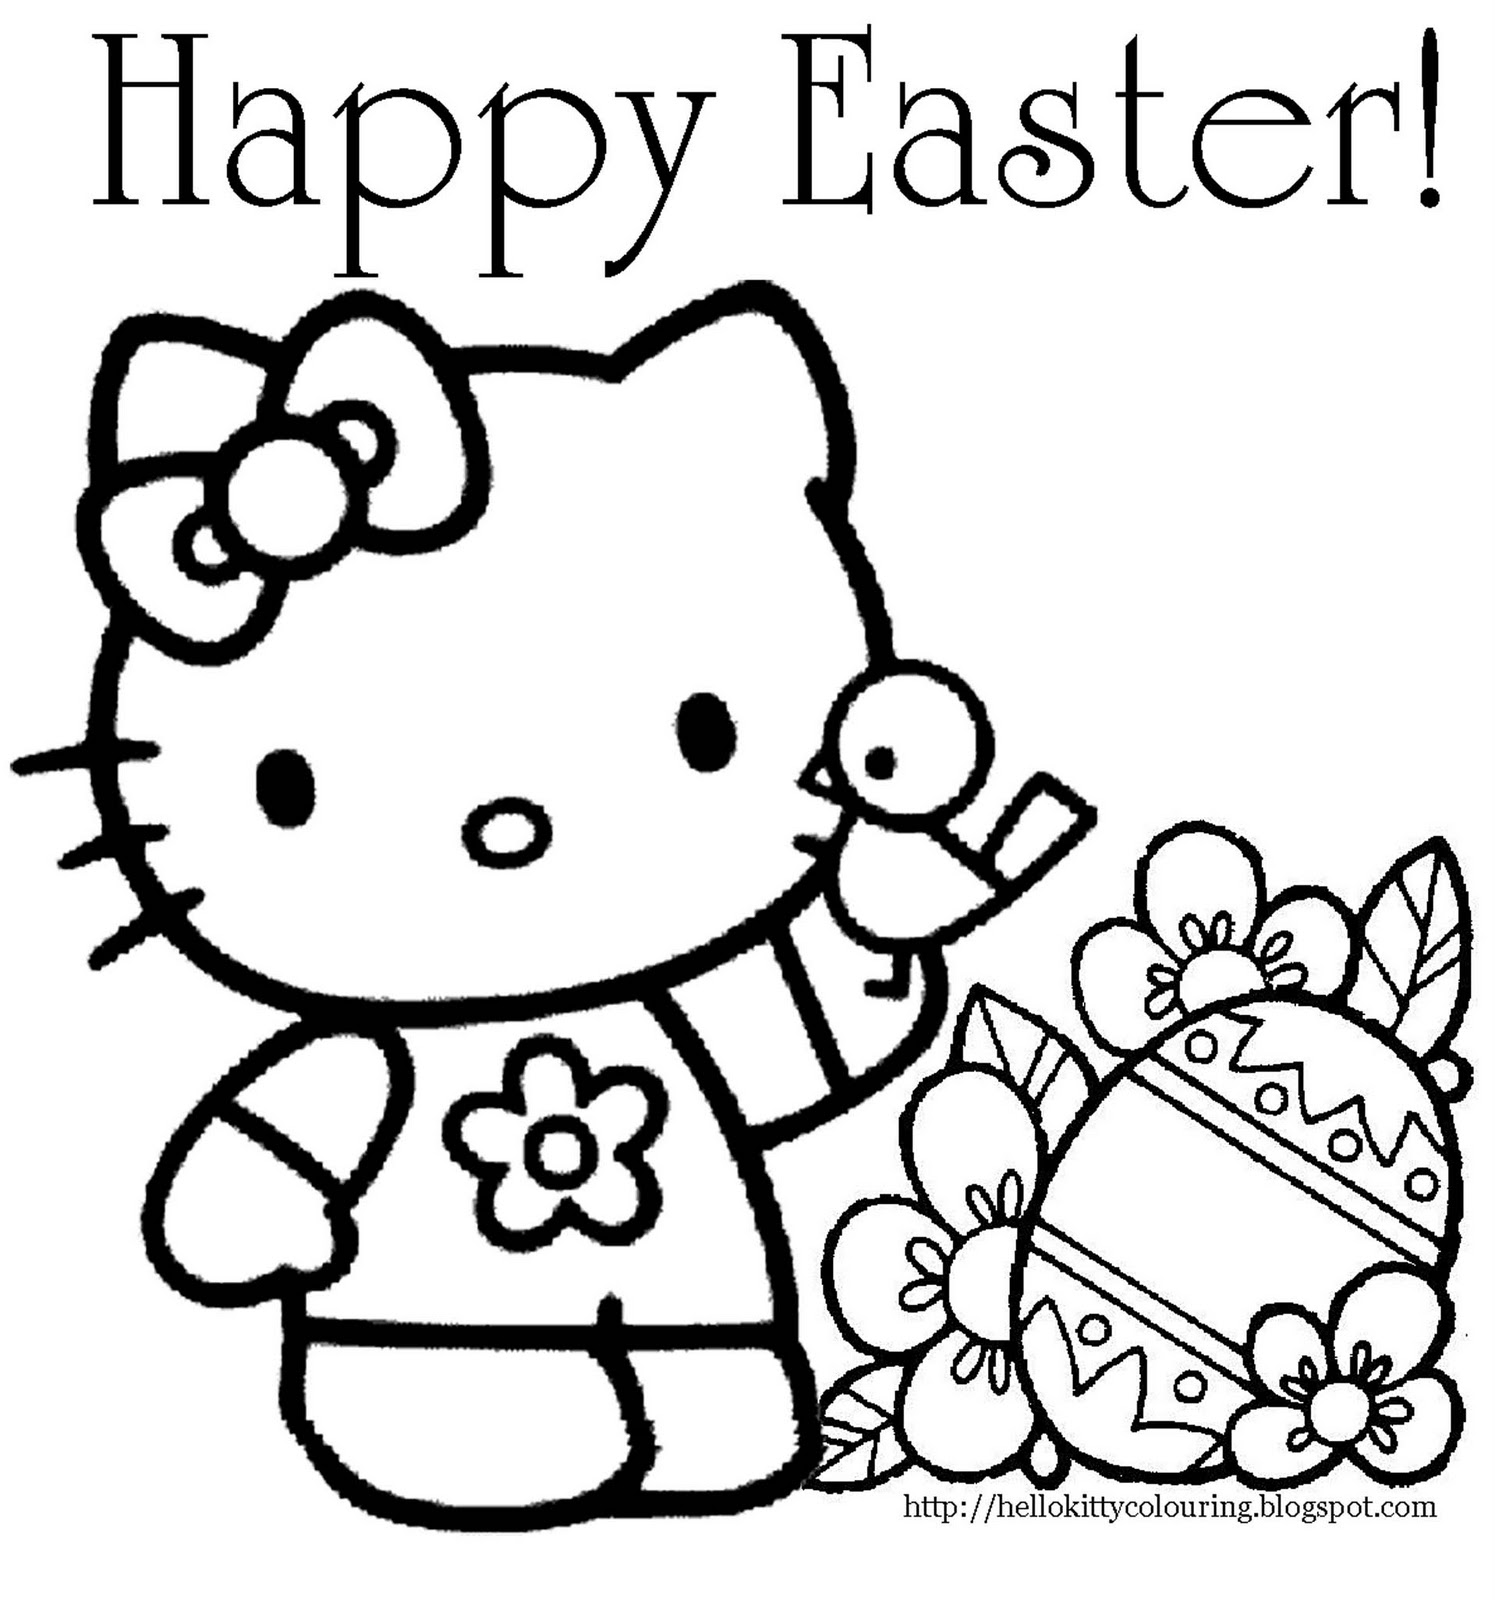 1495x1600 Printable Coloring Pages For Easter